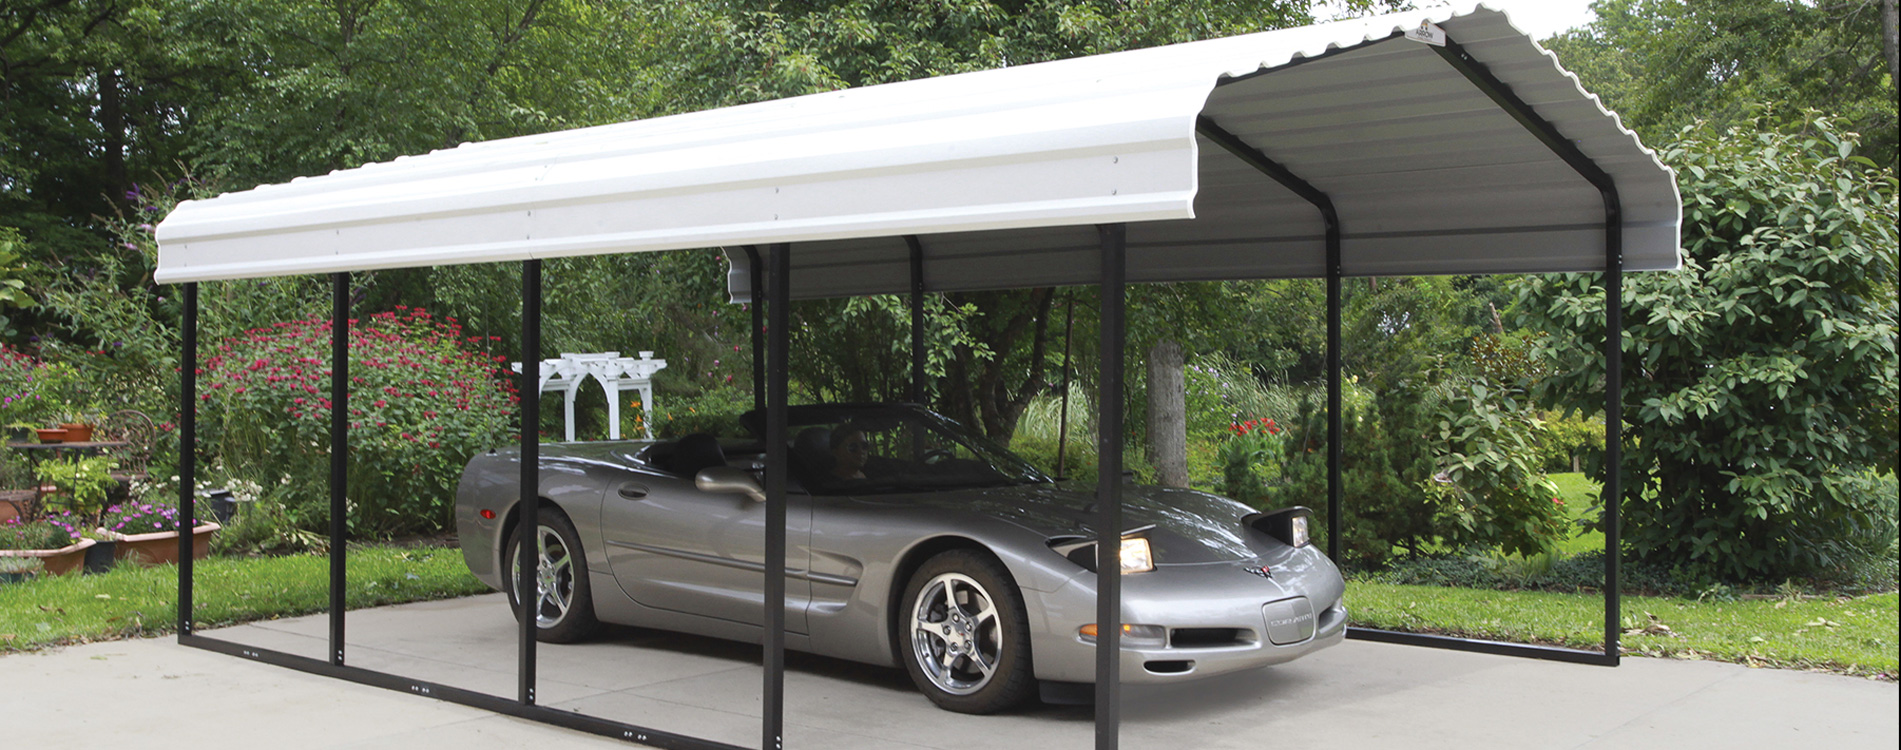 Ez Up Canopy 10x20 >> Shelters of New England, portable garages, carports and ...